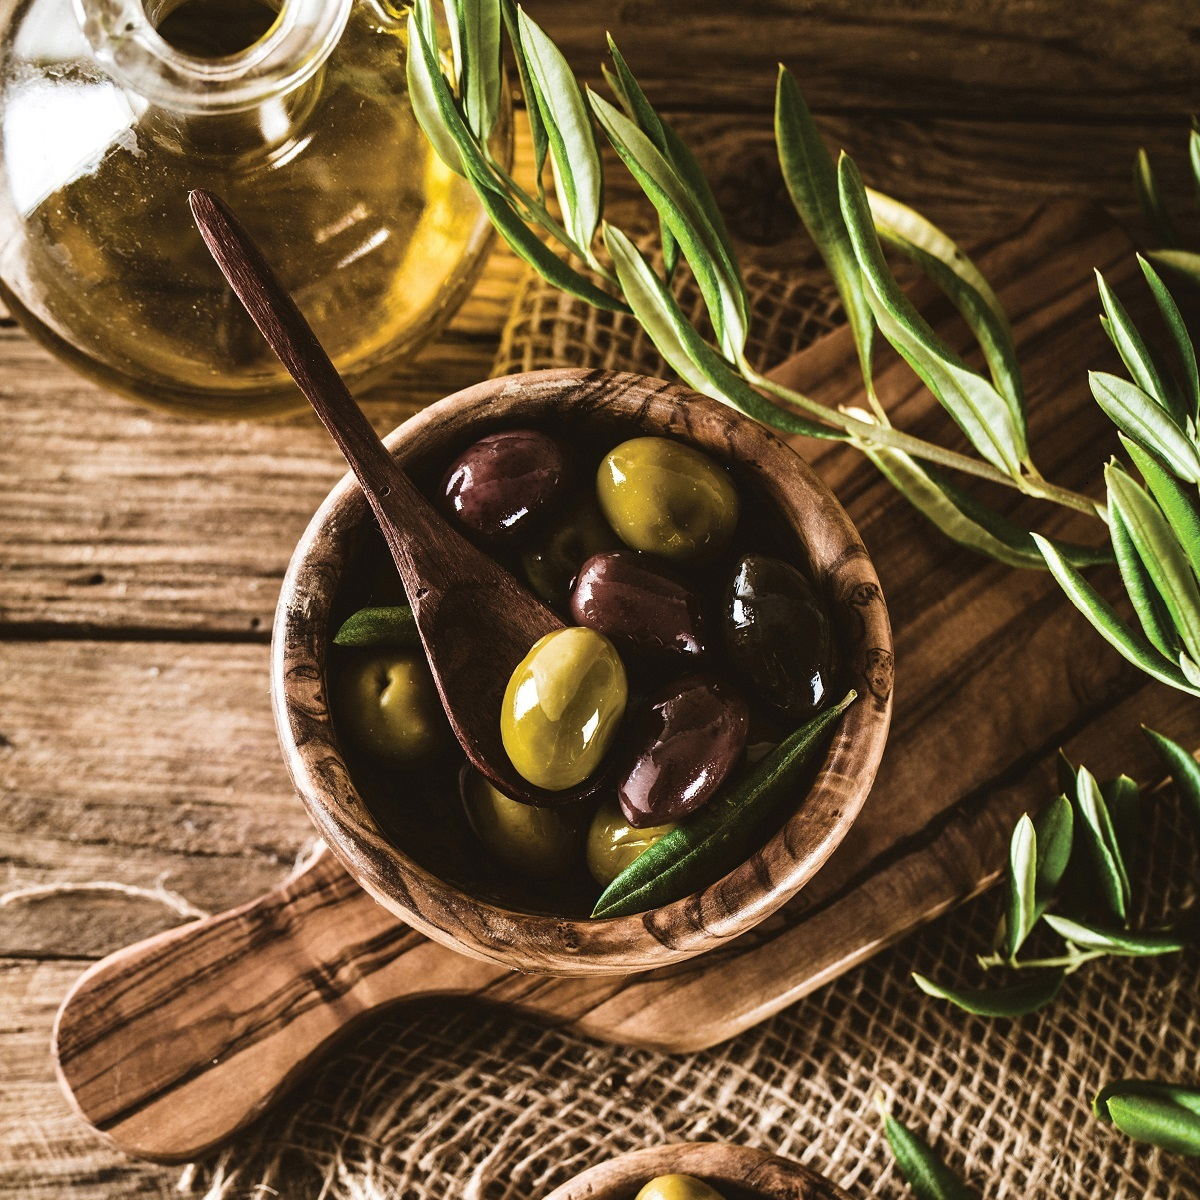 Olives & Antipasti